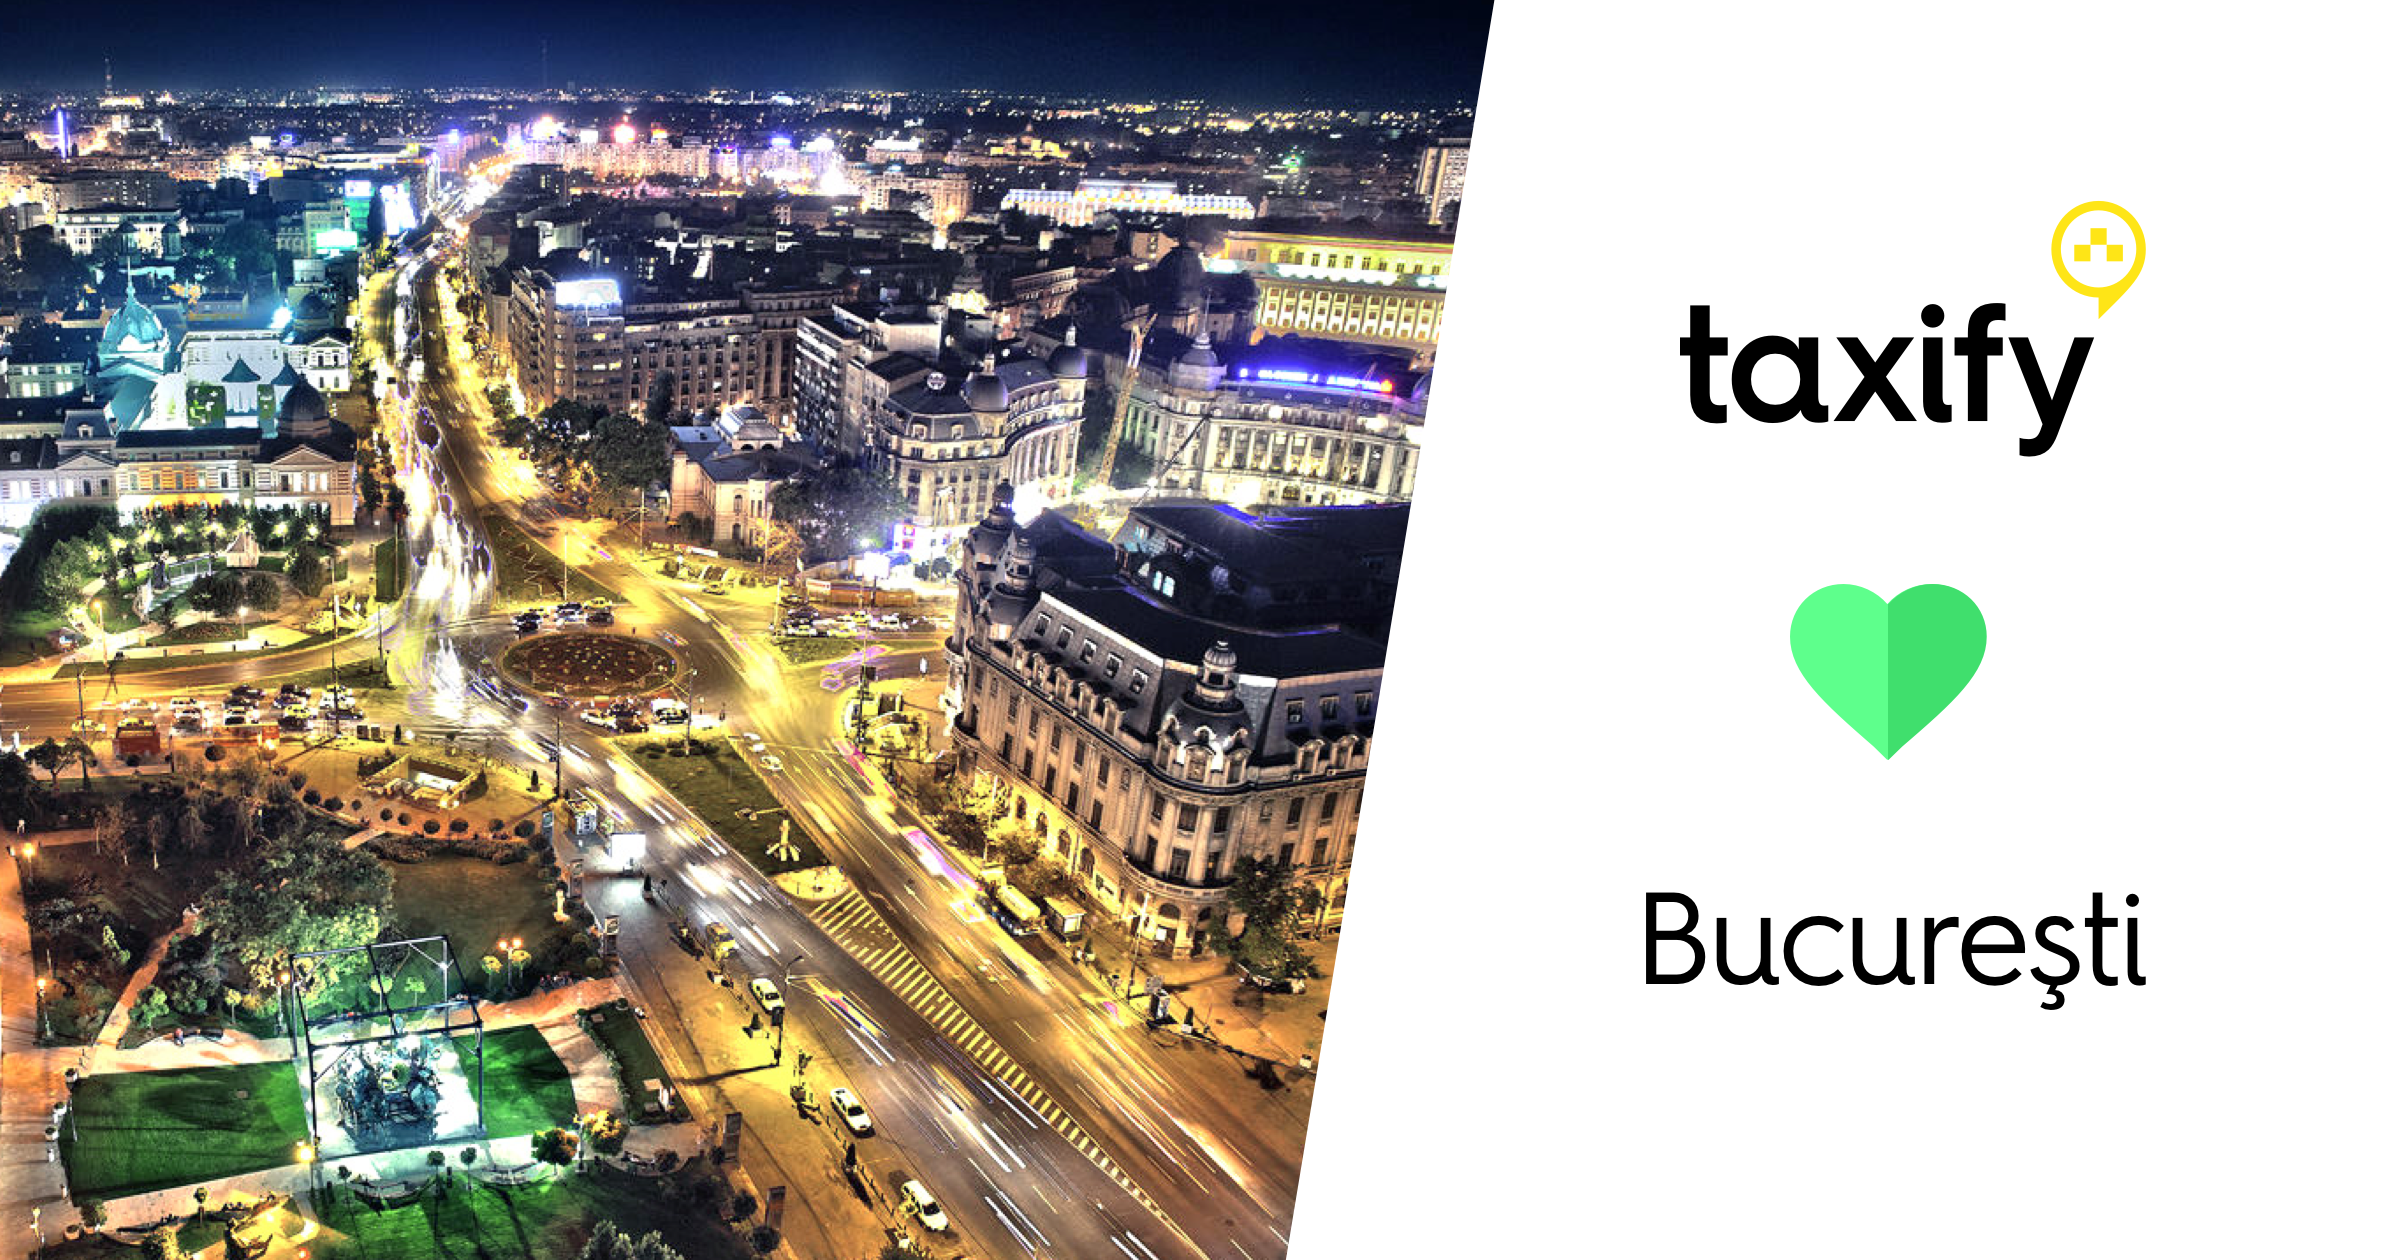 Applicatia de transport Taxify, acum disponibila si in Romania